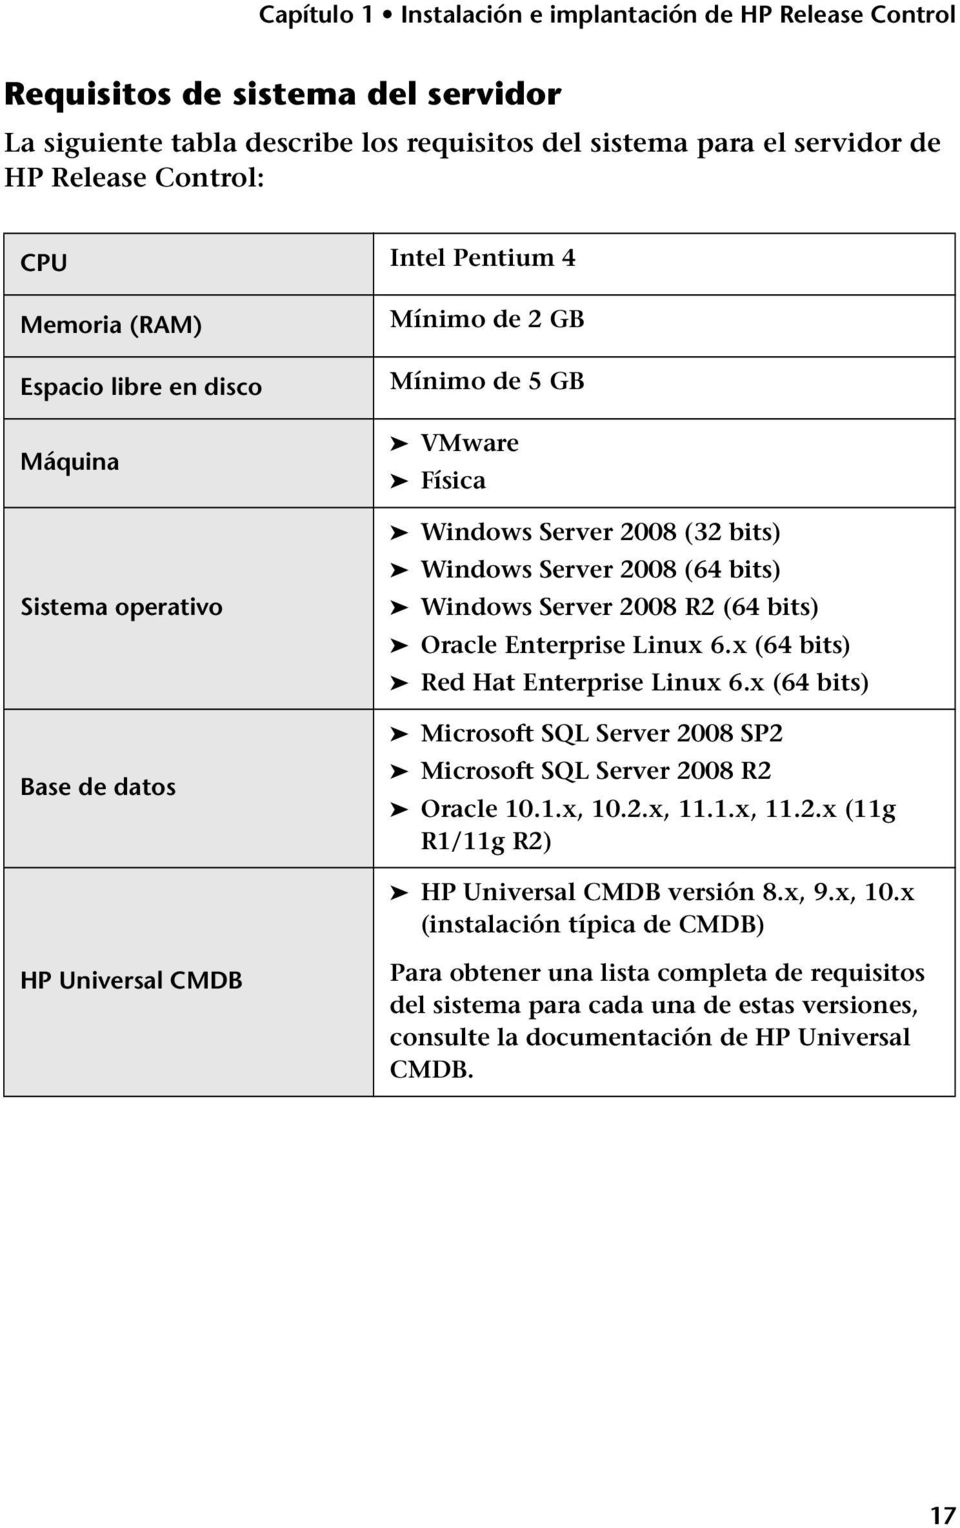 x (64 bits) Red Hat Enterprise Linux 6.x (64 bits) Microsoft SQL Server 2008 SP2 Microsoft SQL Server 2008 R2 Oracle 10.1.x, 10.2.x, 11.1.x, 11.2.x (11g R1/11g R2) HP Universal CMDB versión 8.